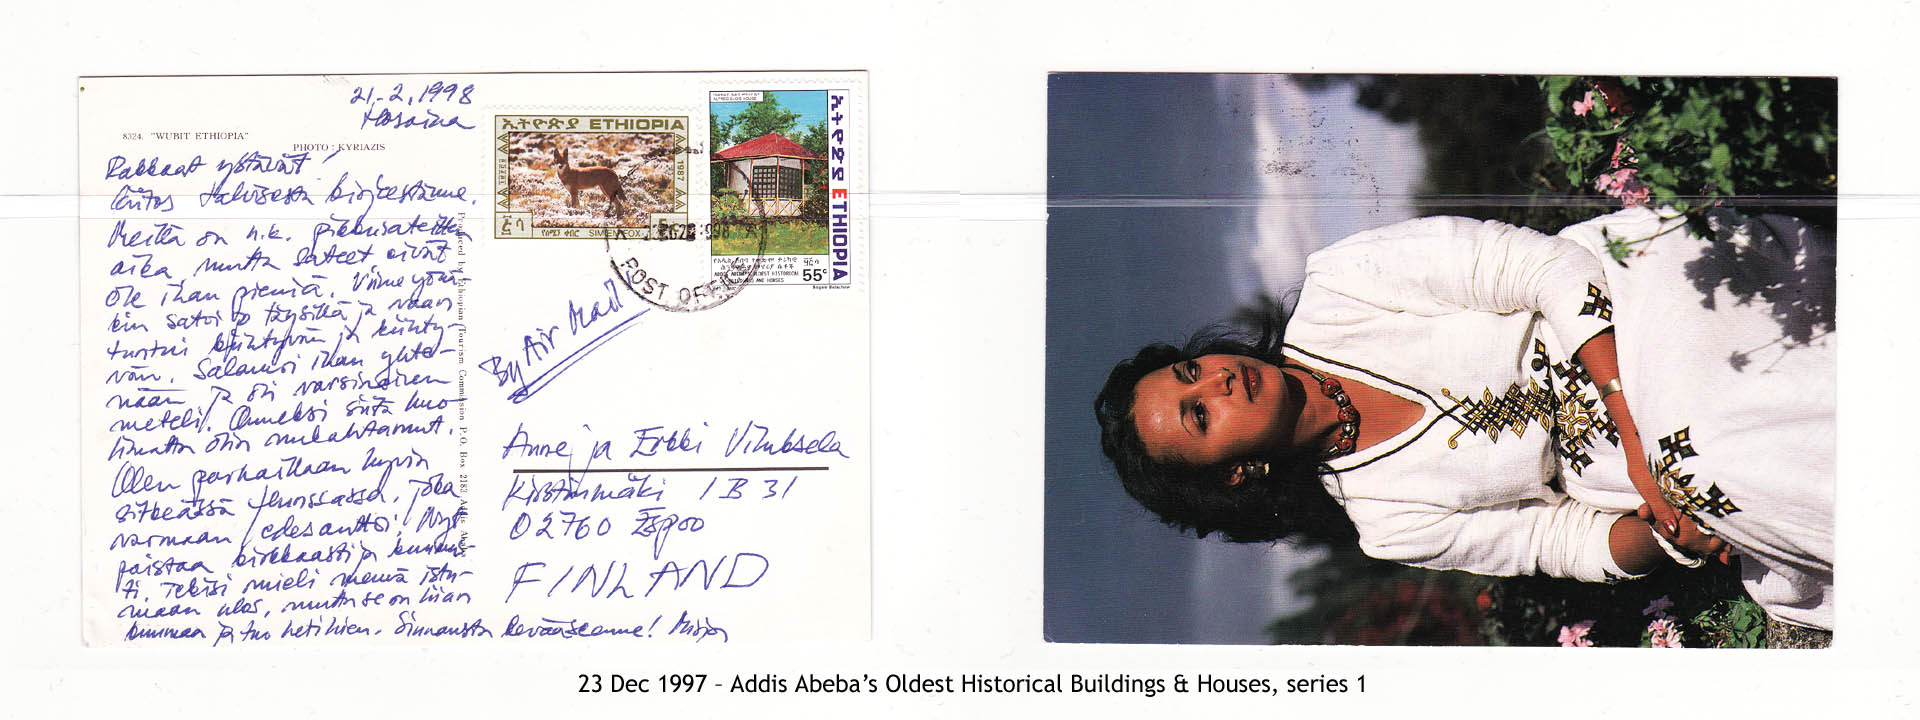 19971223 – Addis Abeba's Oldest Historical Buildings & Houses, series 1